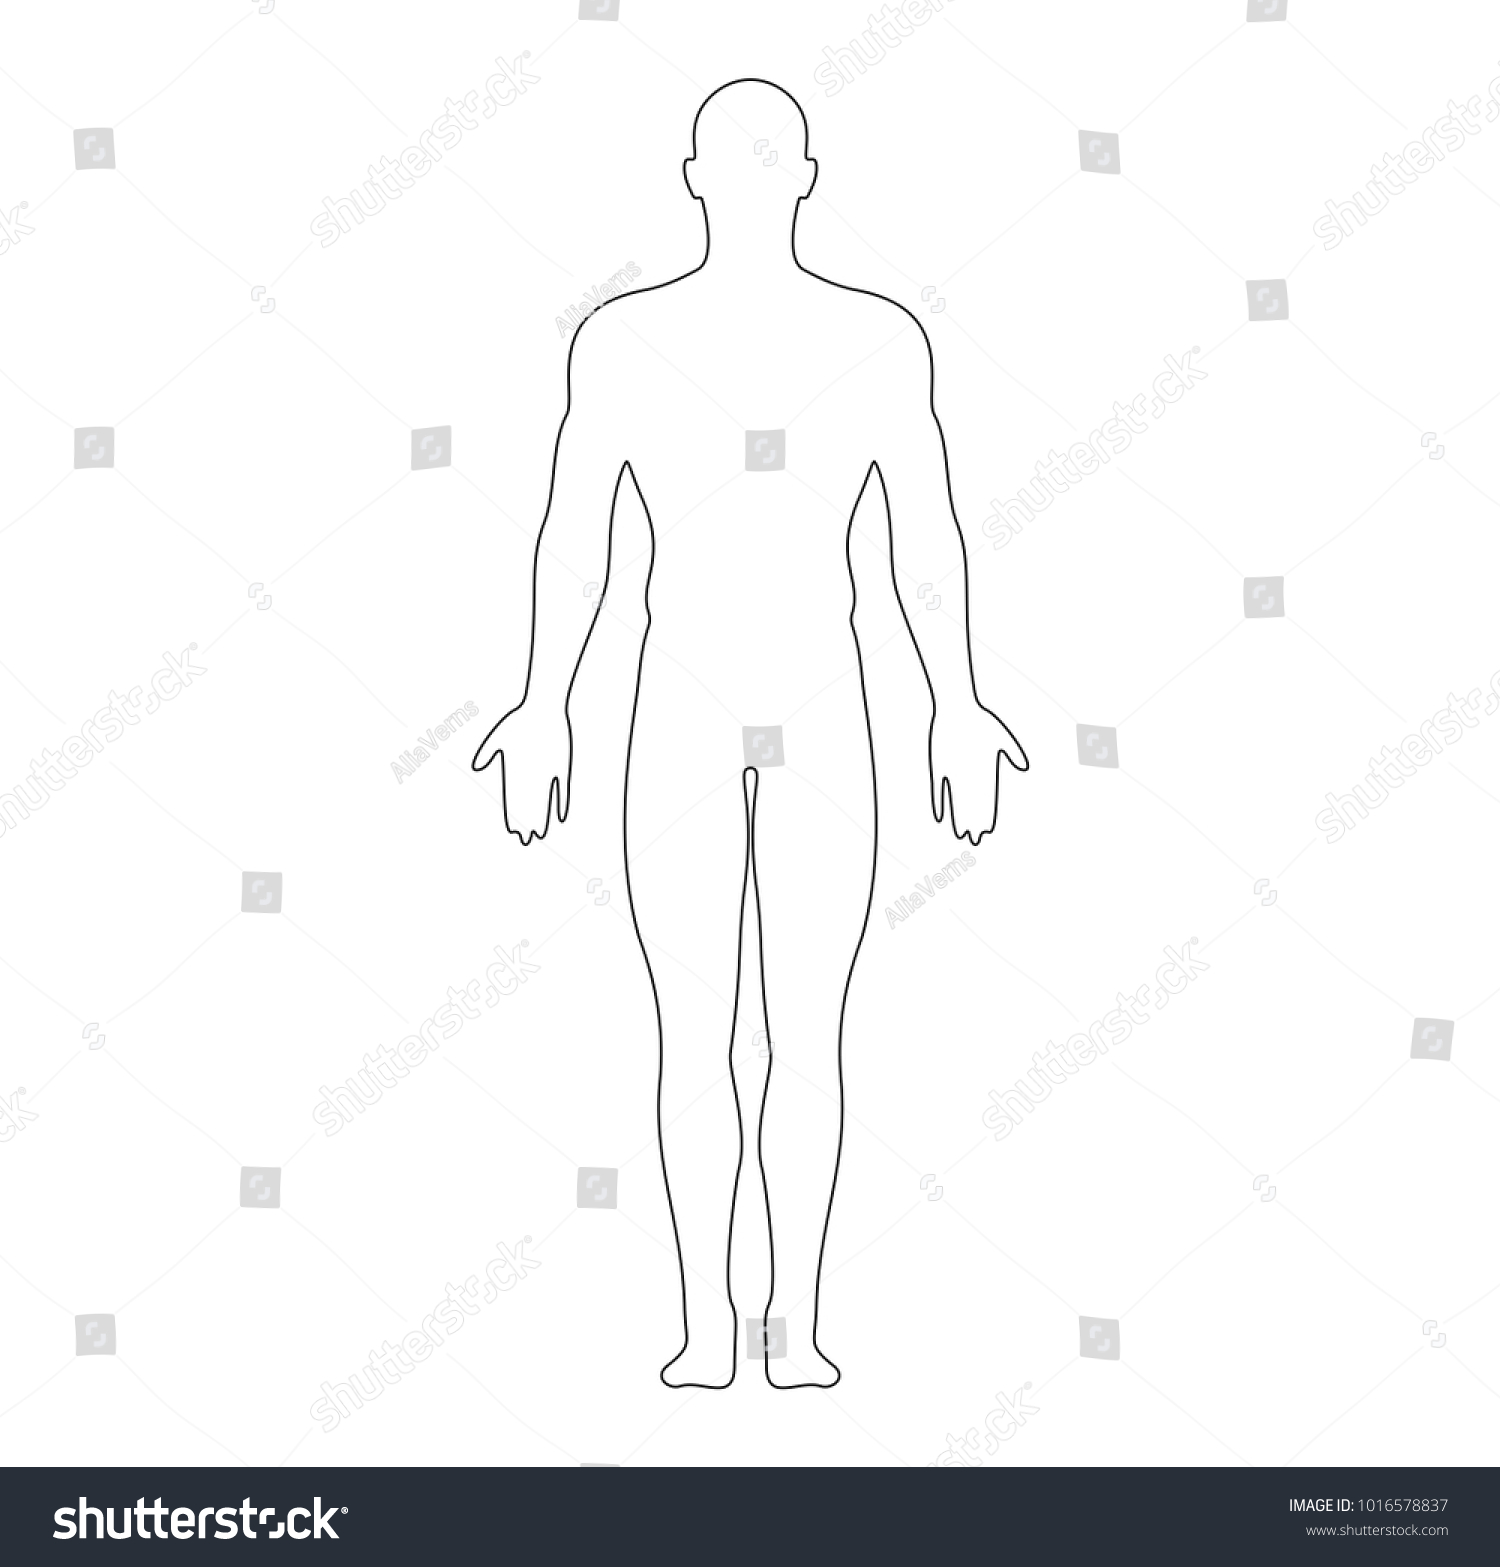 Anatomical Position Anterior View Male Body Stock Vector 1016578837